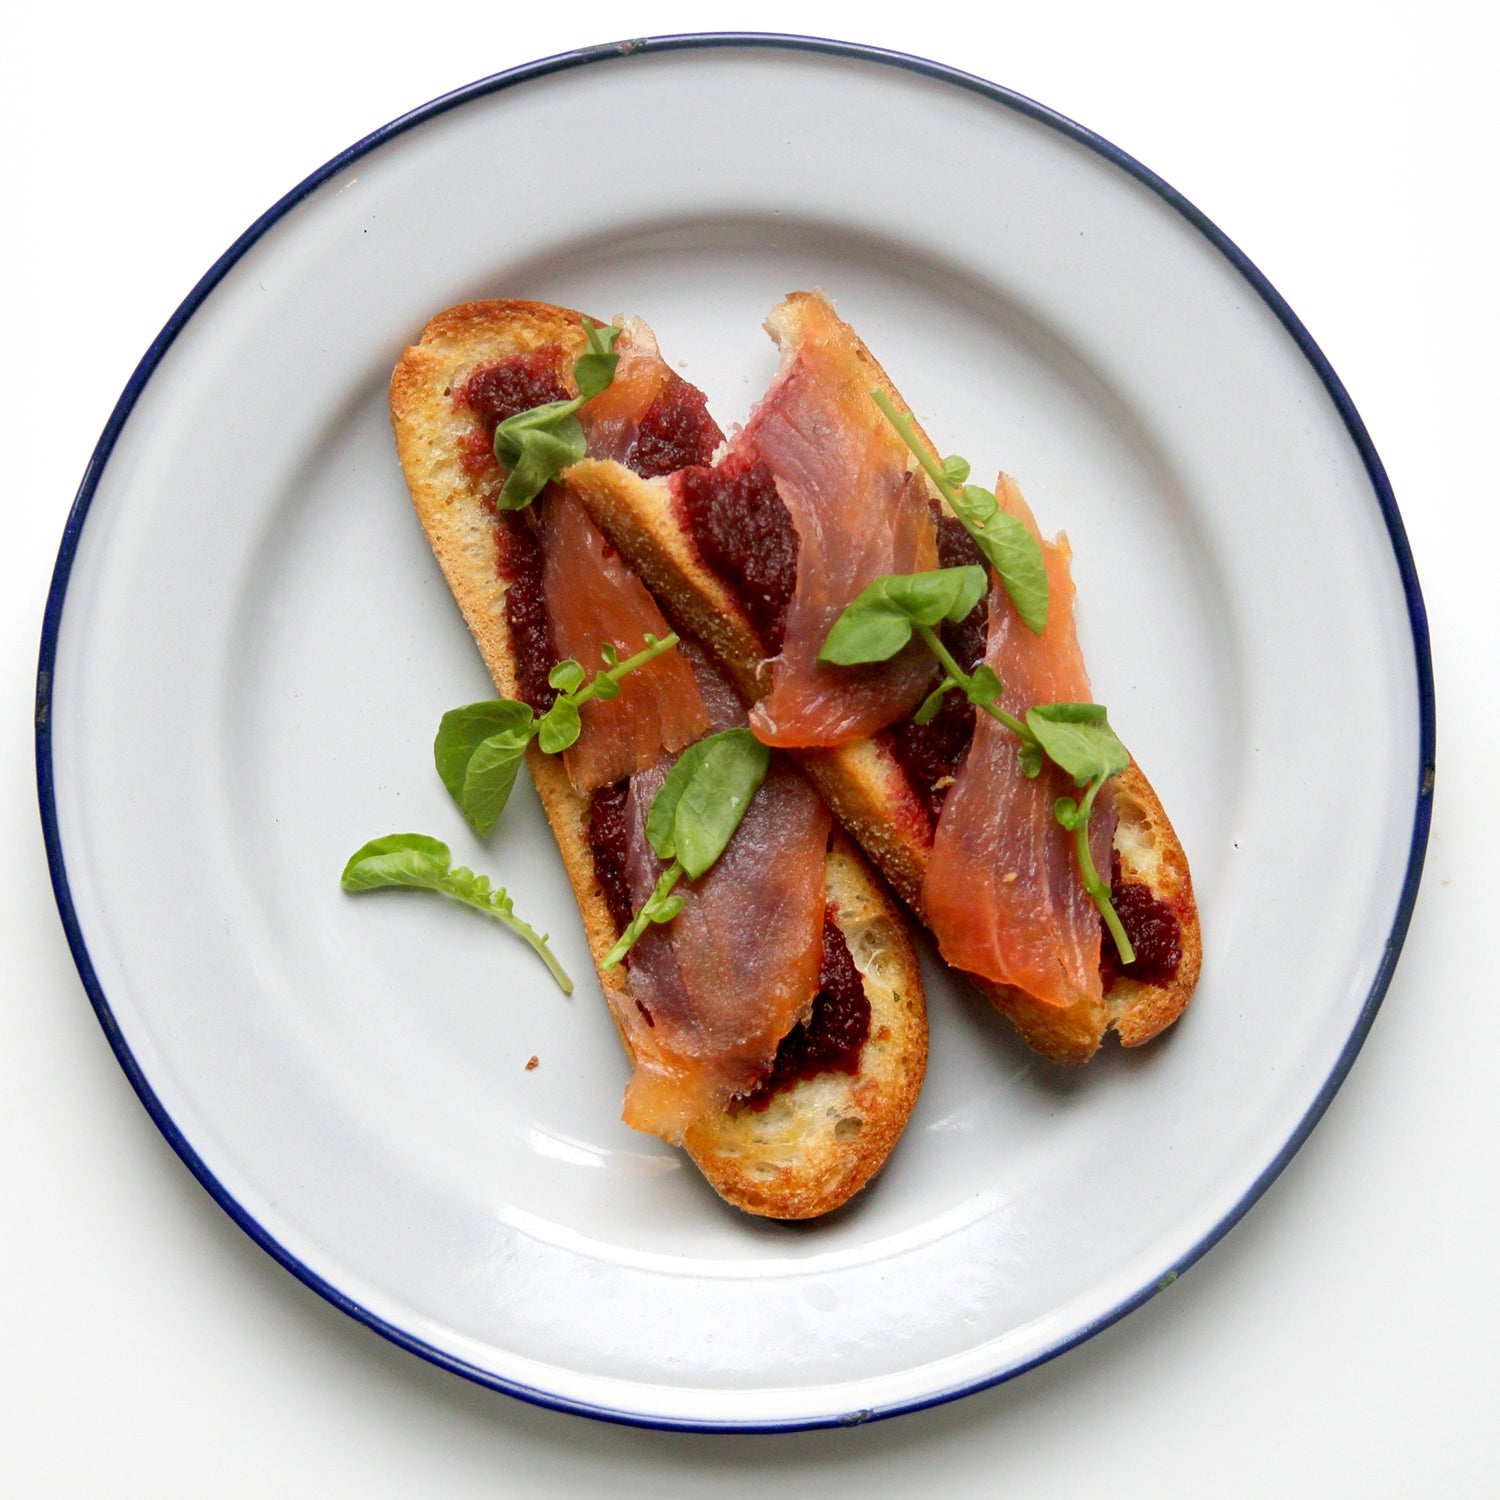 Toast with Roasted Beet Dip, Smoked Salmon, and Watercress